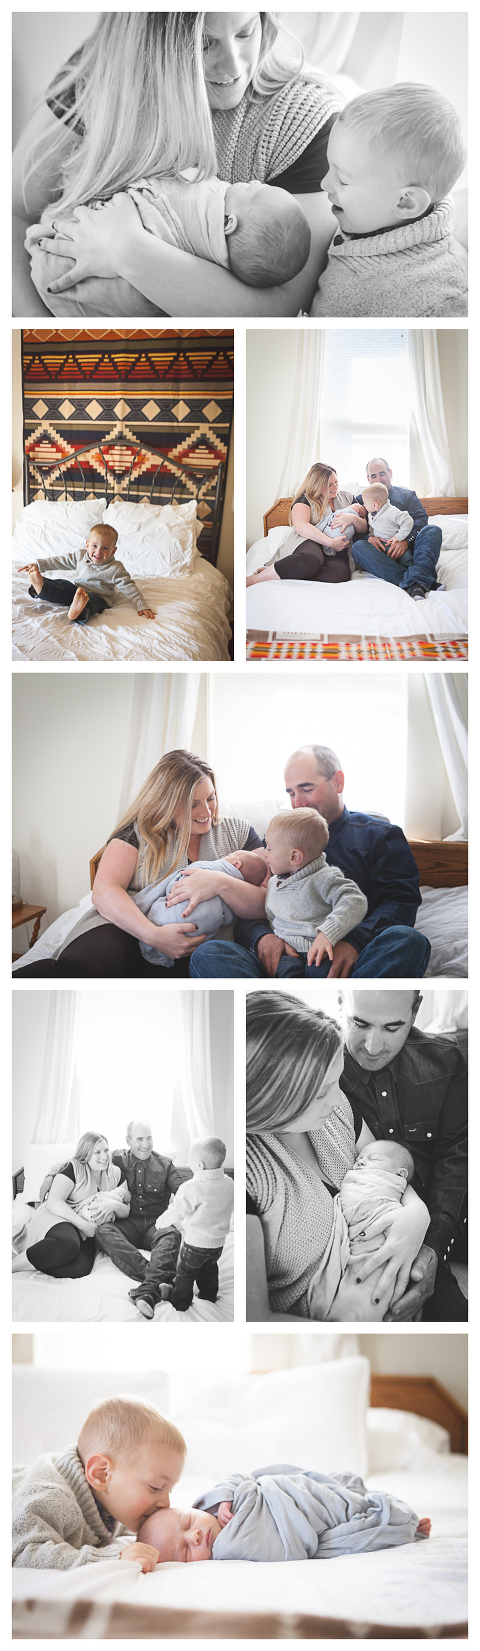 Baby Levi, lifestyle newborn session by Hailey Haberman in Ellensburg WA